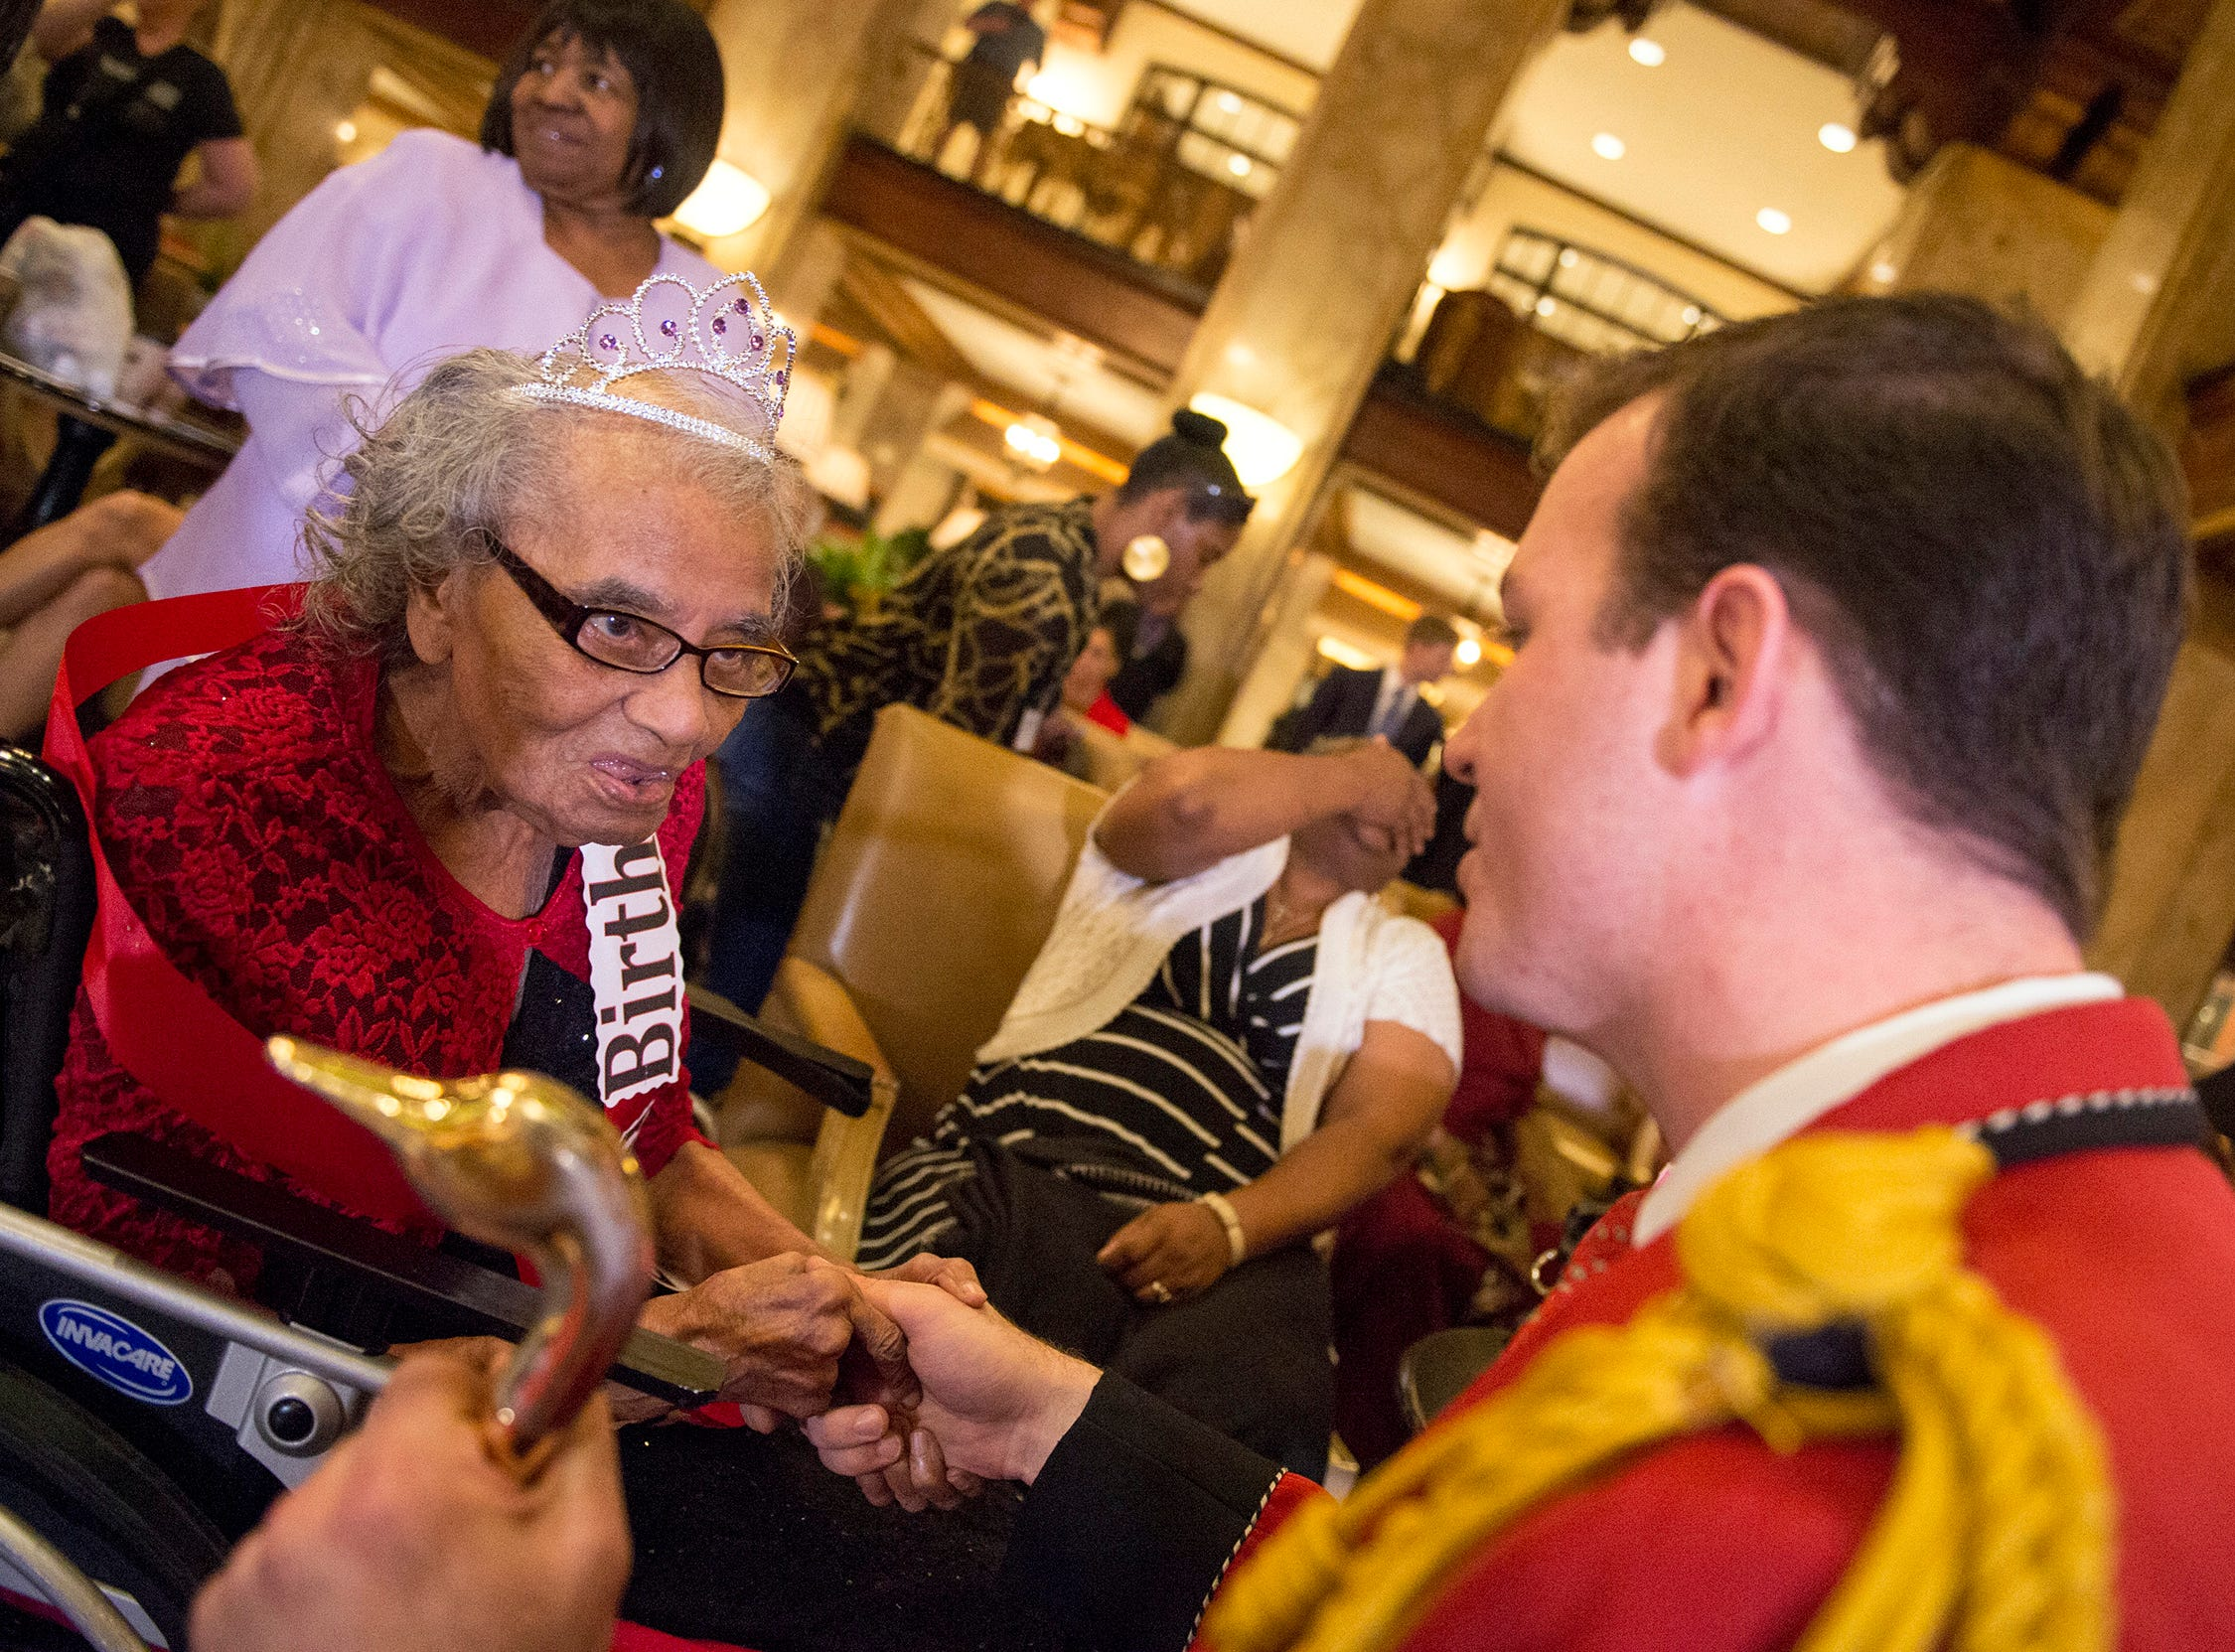 """Peabody Duckmaster Anthony Petrina, right, talks with Dorothy Davis as she celebrates her 105th birthday by serving as honorary duckmaster at the Peabody Hotel on April 29, 2016. Davis is a patient at Crossroads Hospice which arranged the event, a """"Gift of a Day"""" which they offer all their patients. Davis once worked at the Peabody Hotel as an elevator operator."""